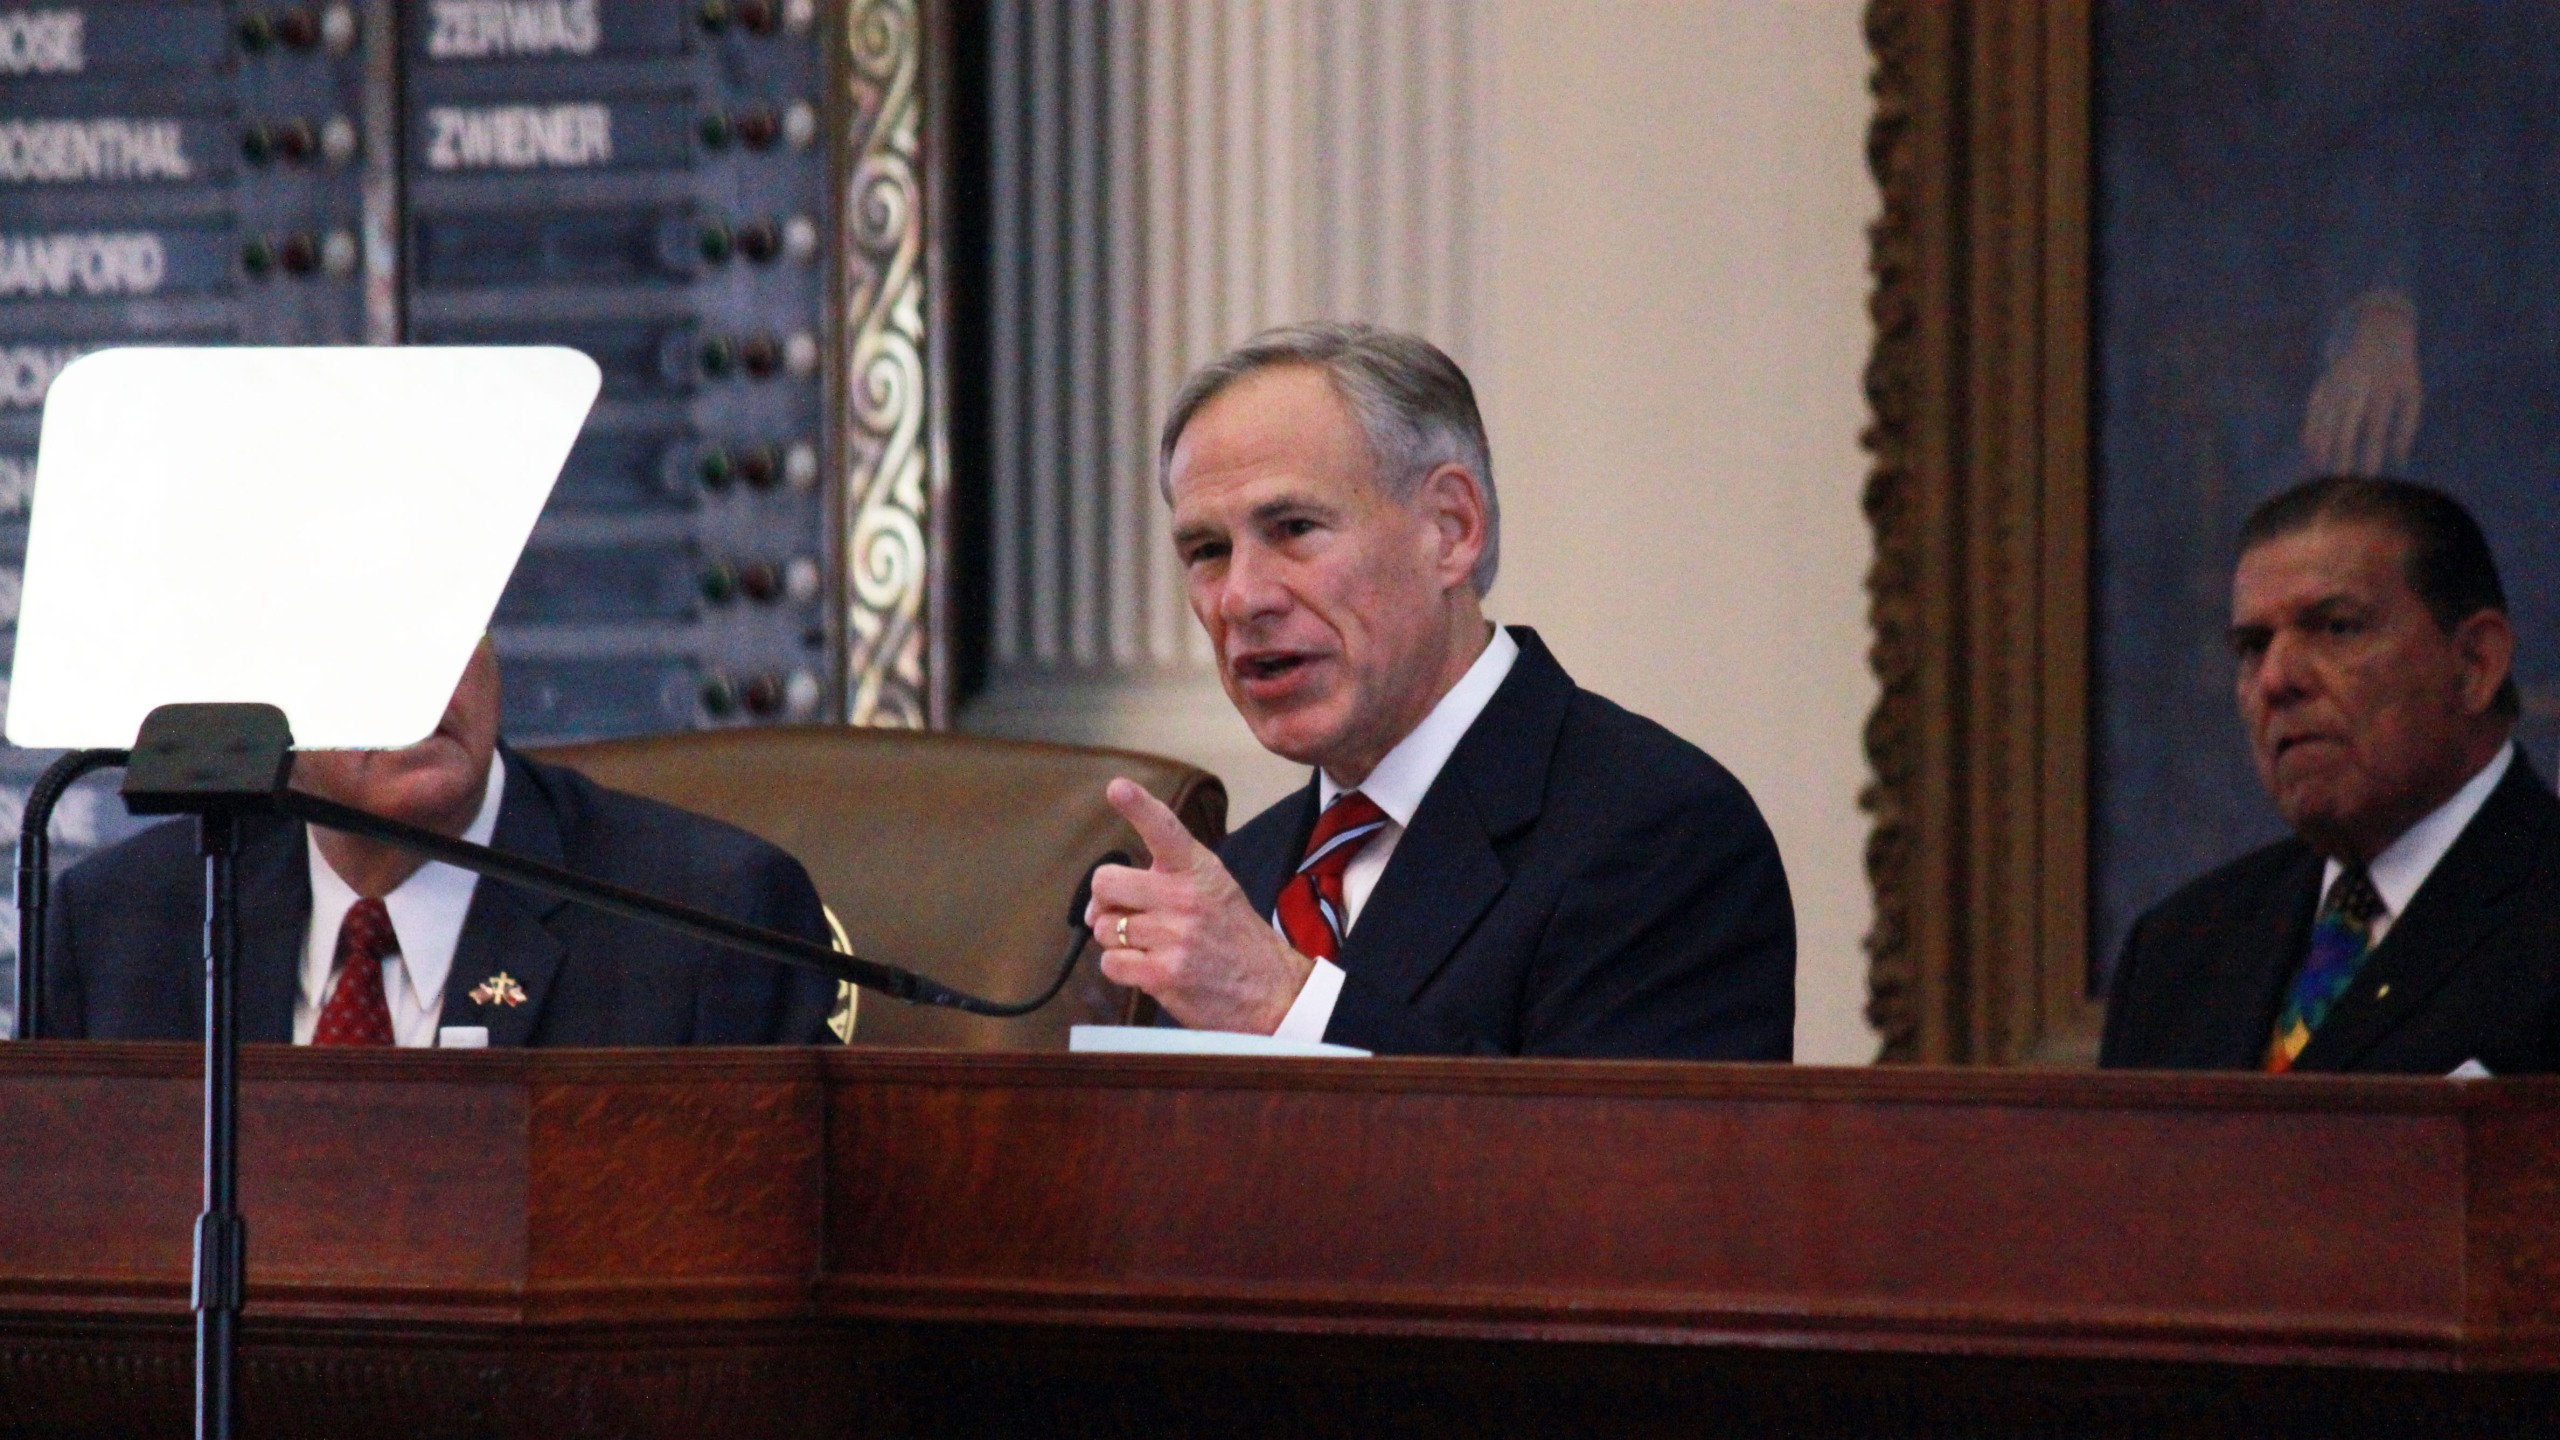 gov greg abbott state of the state 2019_1549401031406.jpg-846655081.jpg